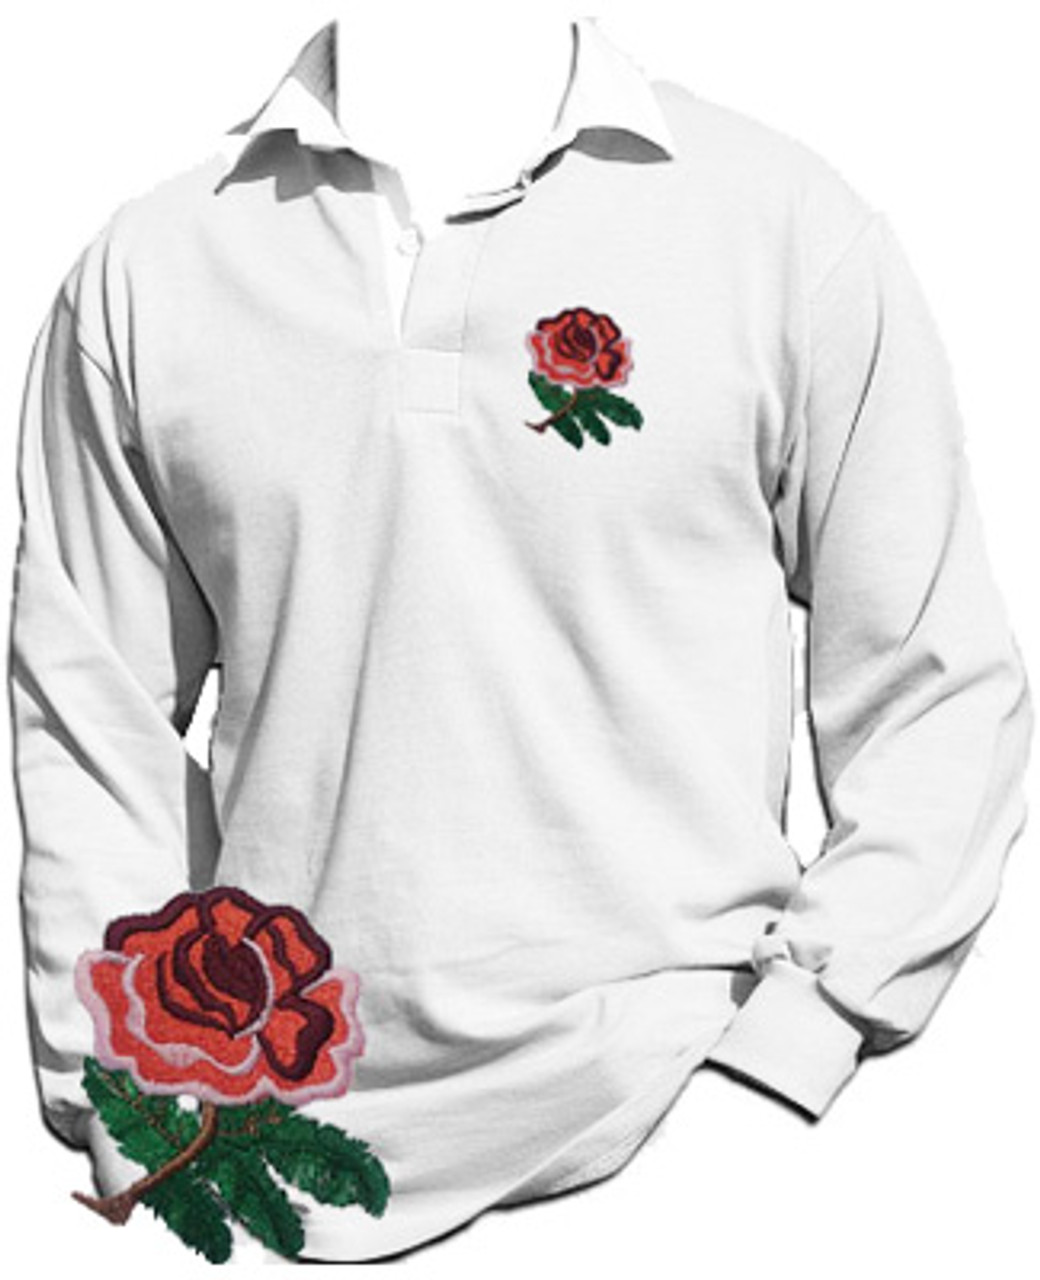 1bbd1683d51 A 1970's style retro England Rugby shirt. This Retro 1970's style rugby  shirt is ideal